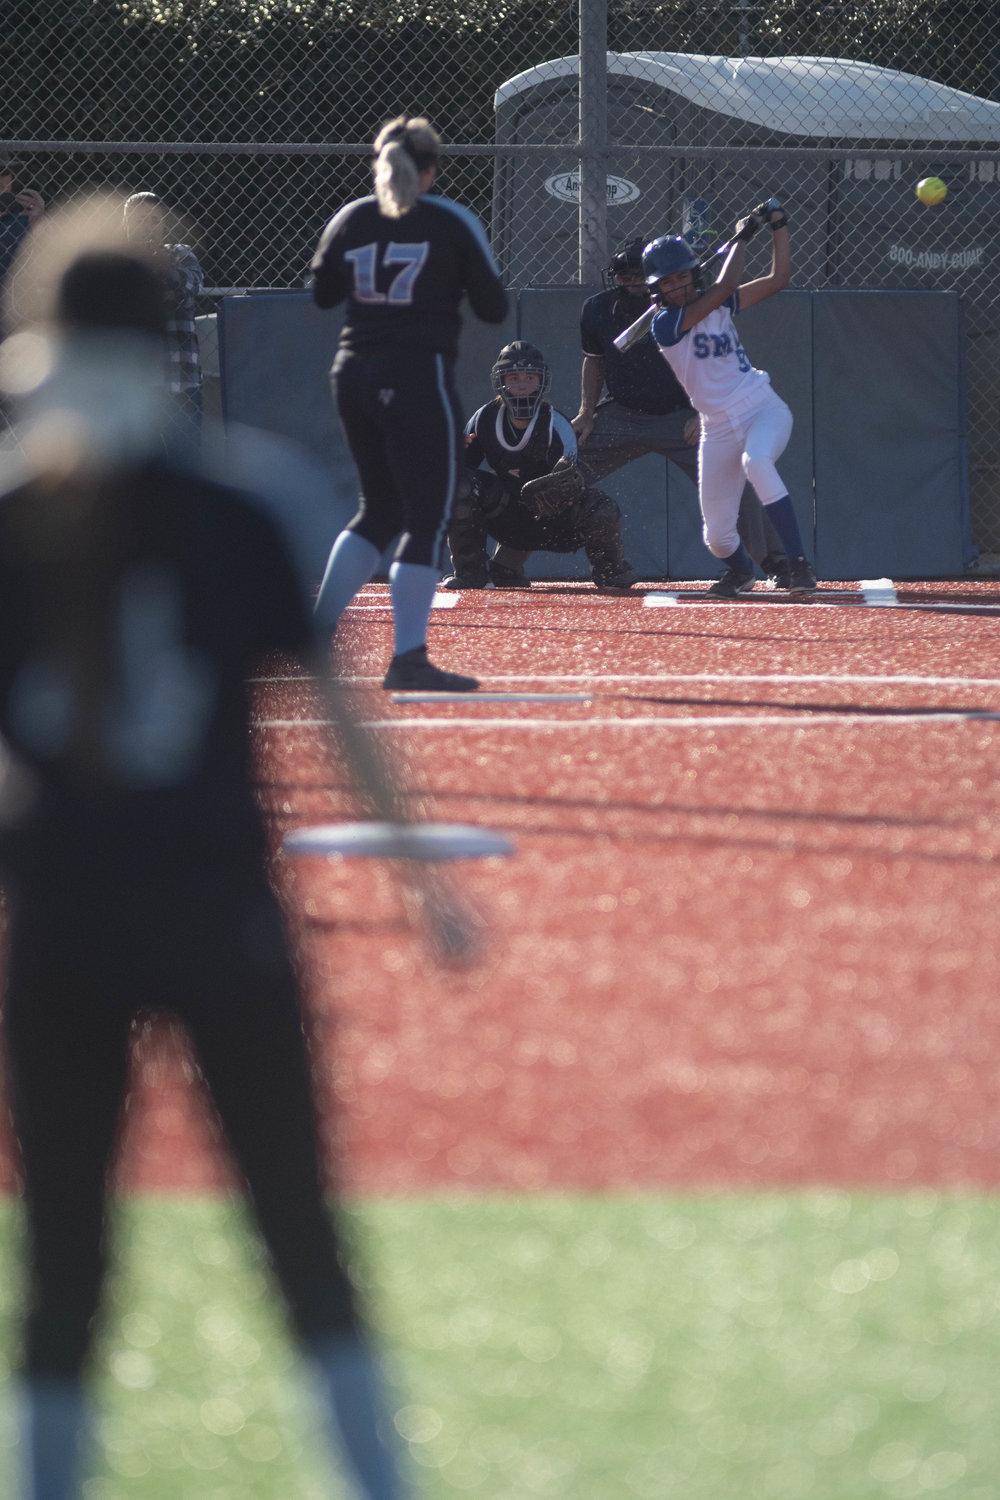 Liana Garcia connects with the ball on Thursday afternoon, March 7, 2019, as the Santa Monica College softball team defeated Questa. (Victor Noerdlinger/Corsair Staff)